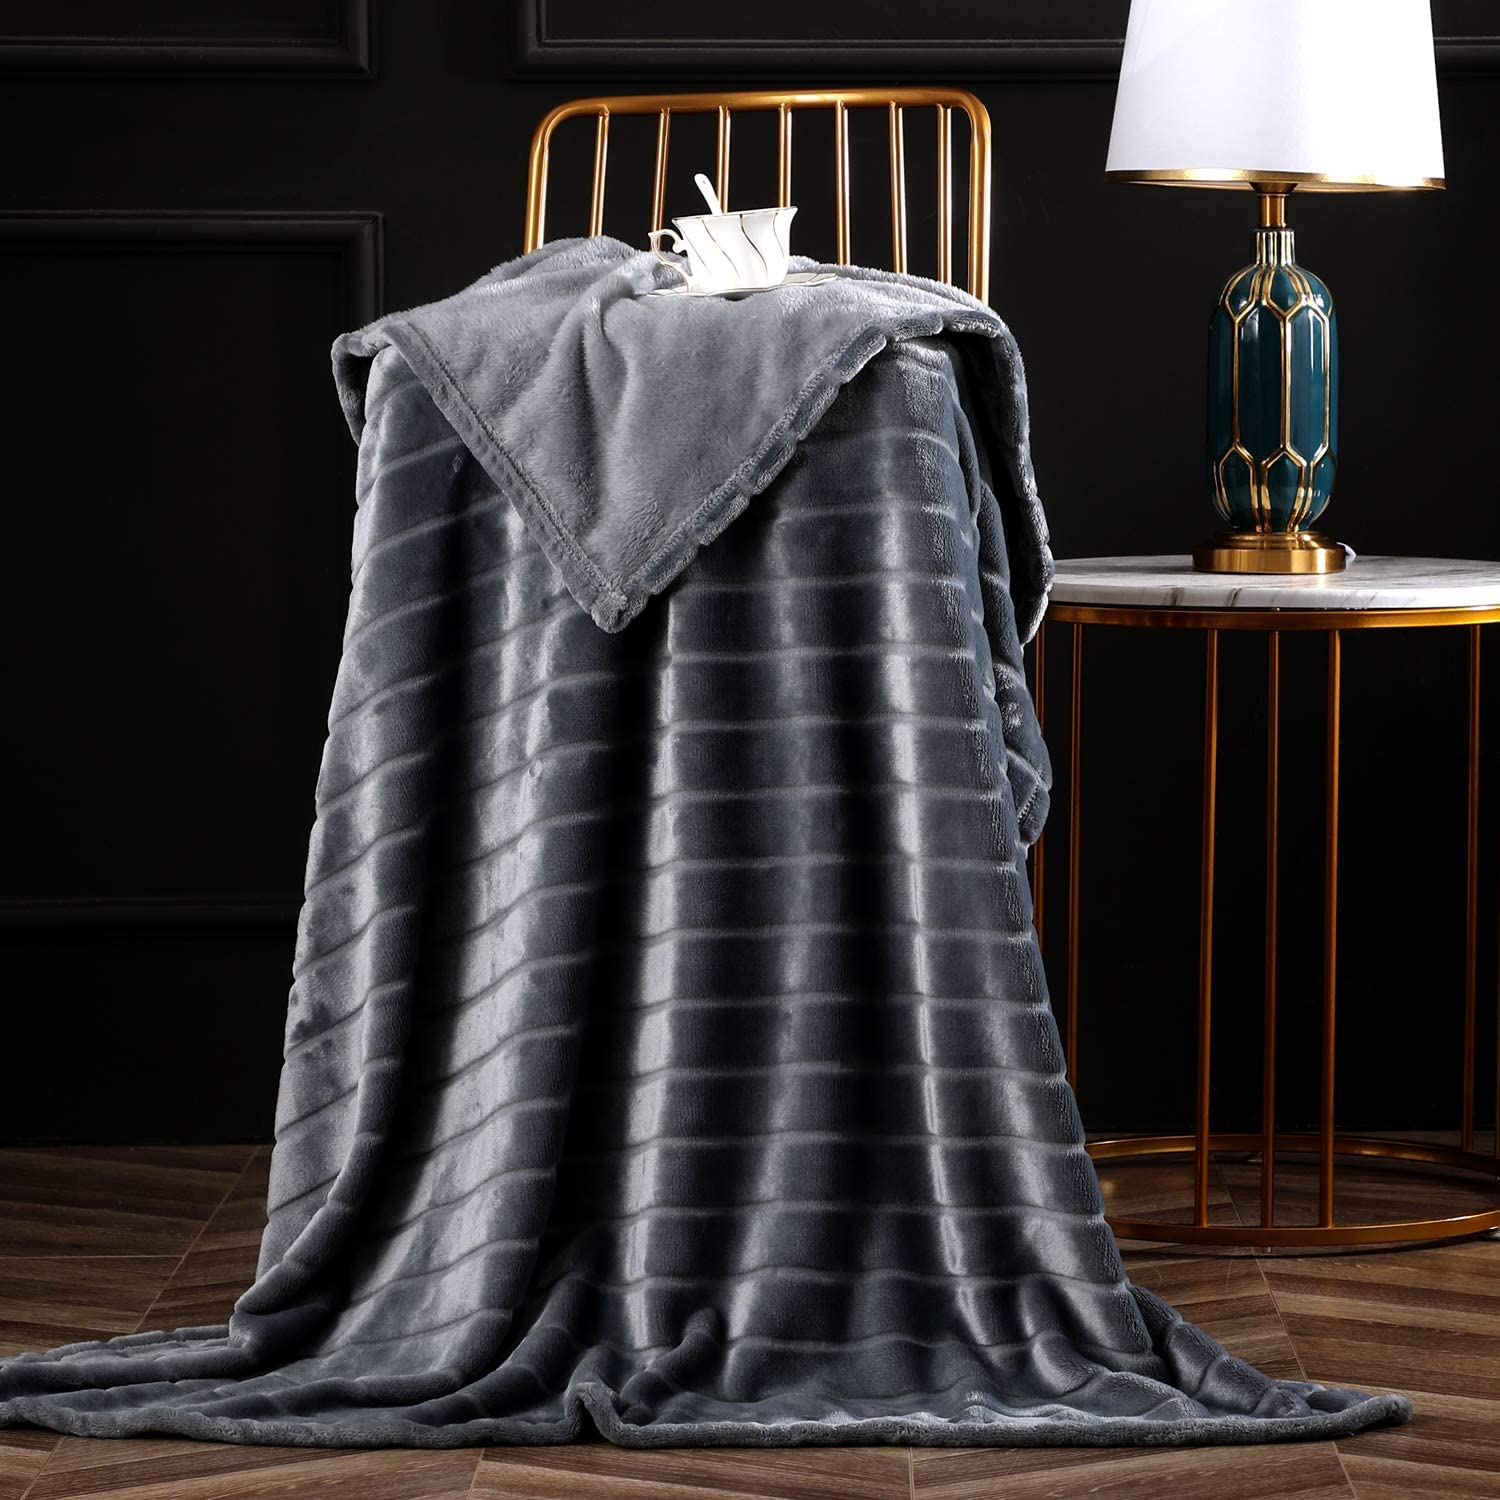 Bertte Austin Mall Throw Blanket Super Soft 330 At the price of surprise GSM Lightw Cozy Warm